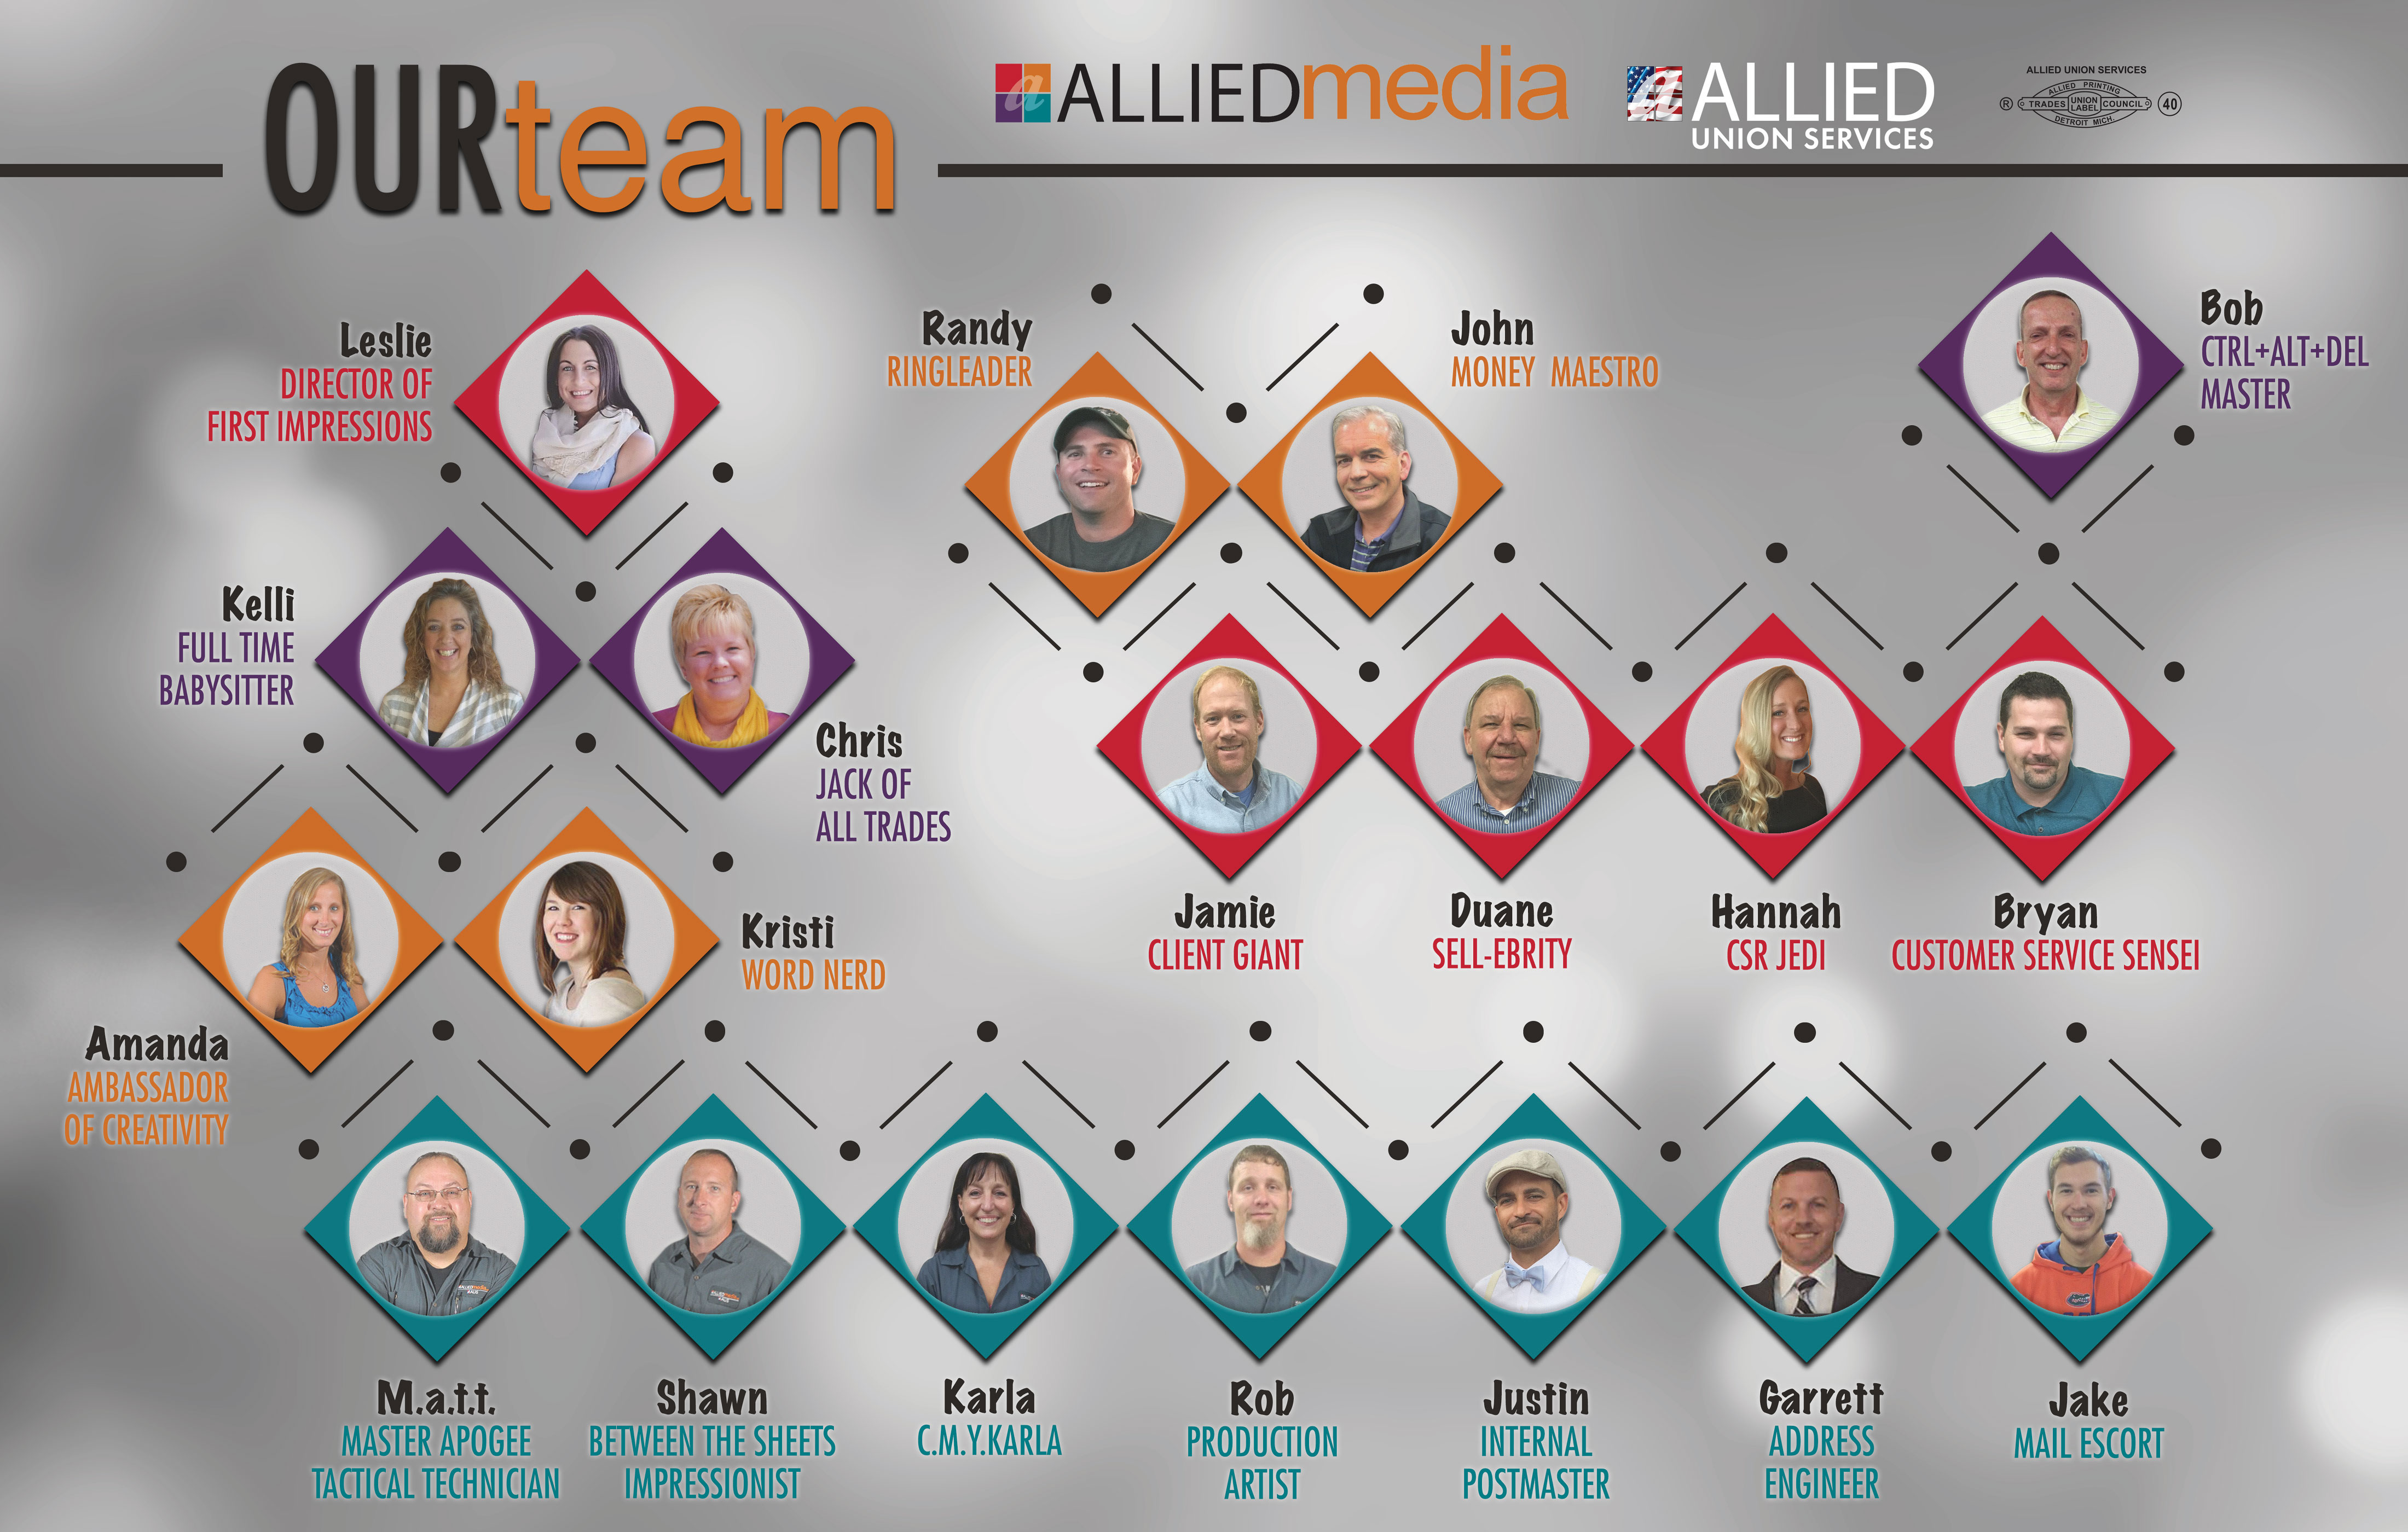 Meet the team of Allied Union Services - put a face to the voice!